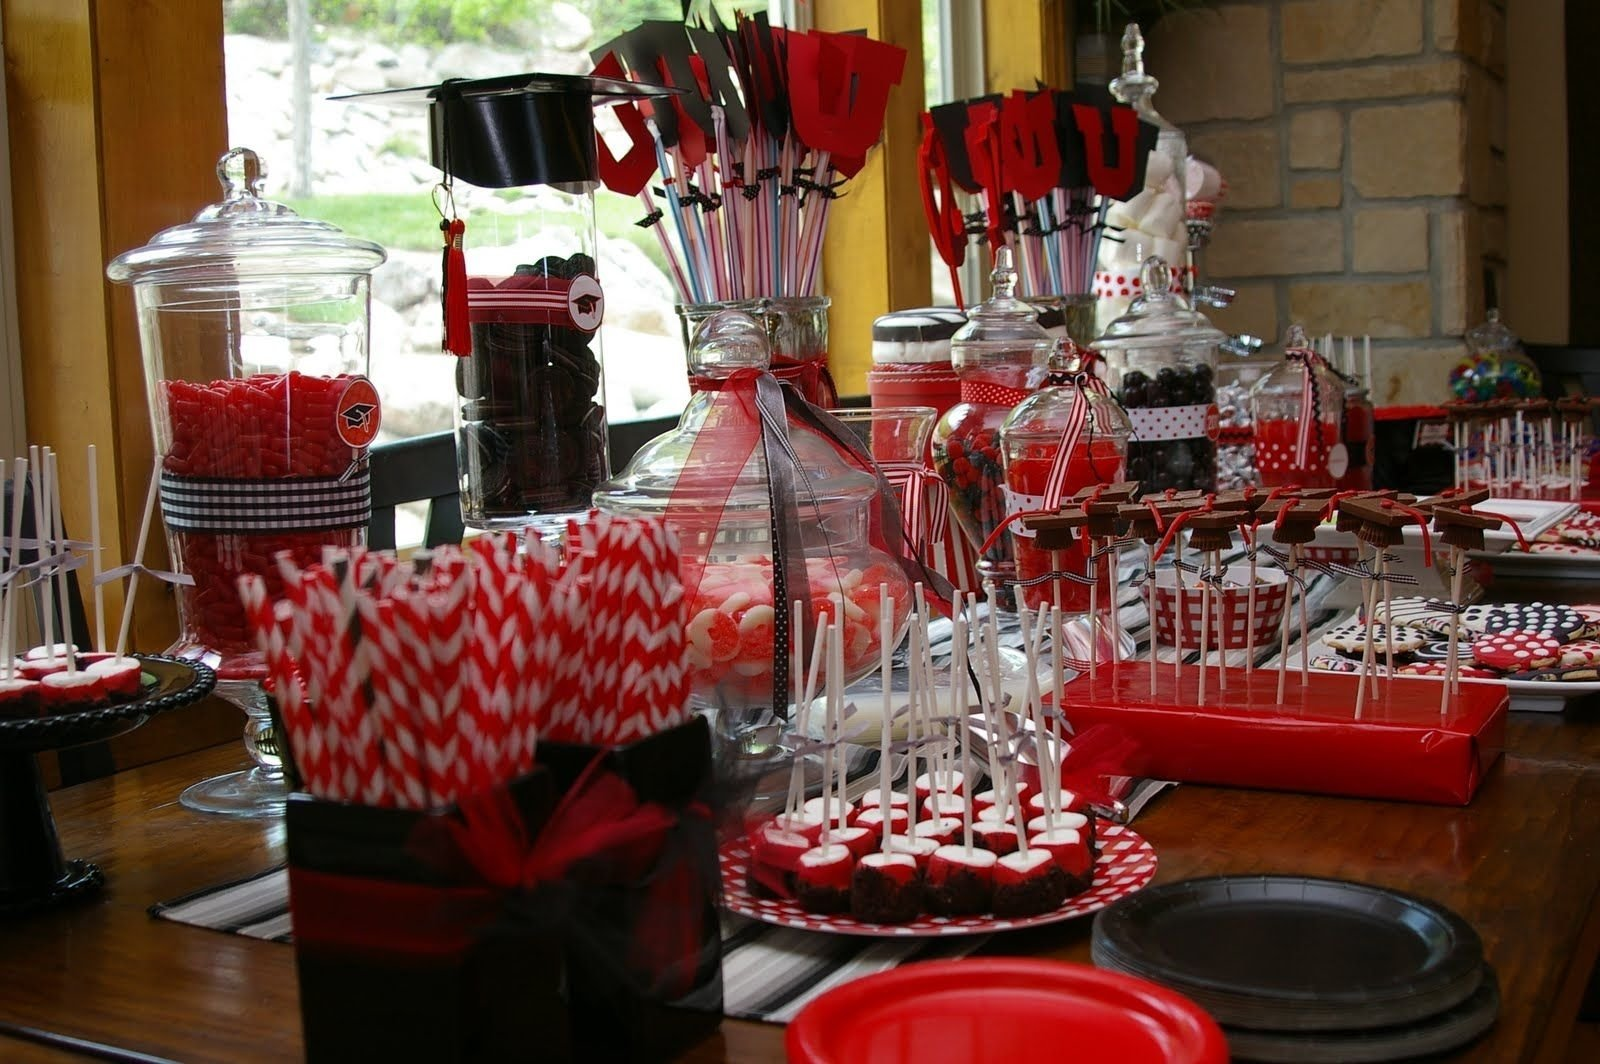 10 Great High School Graduation Party Ideas Pinterest high school graduation party ideas bridgey widgey graduation